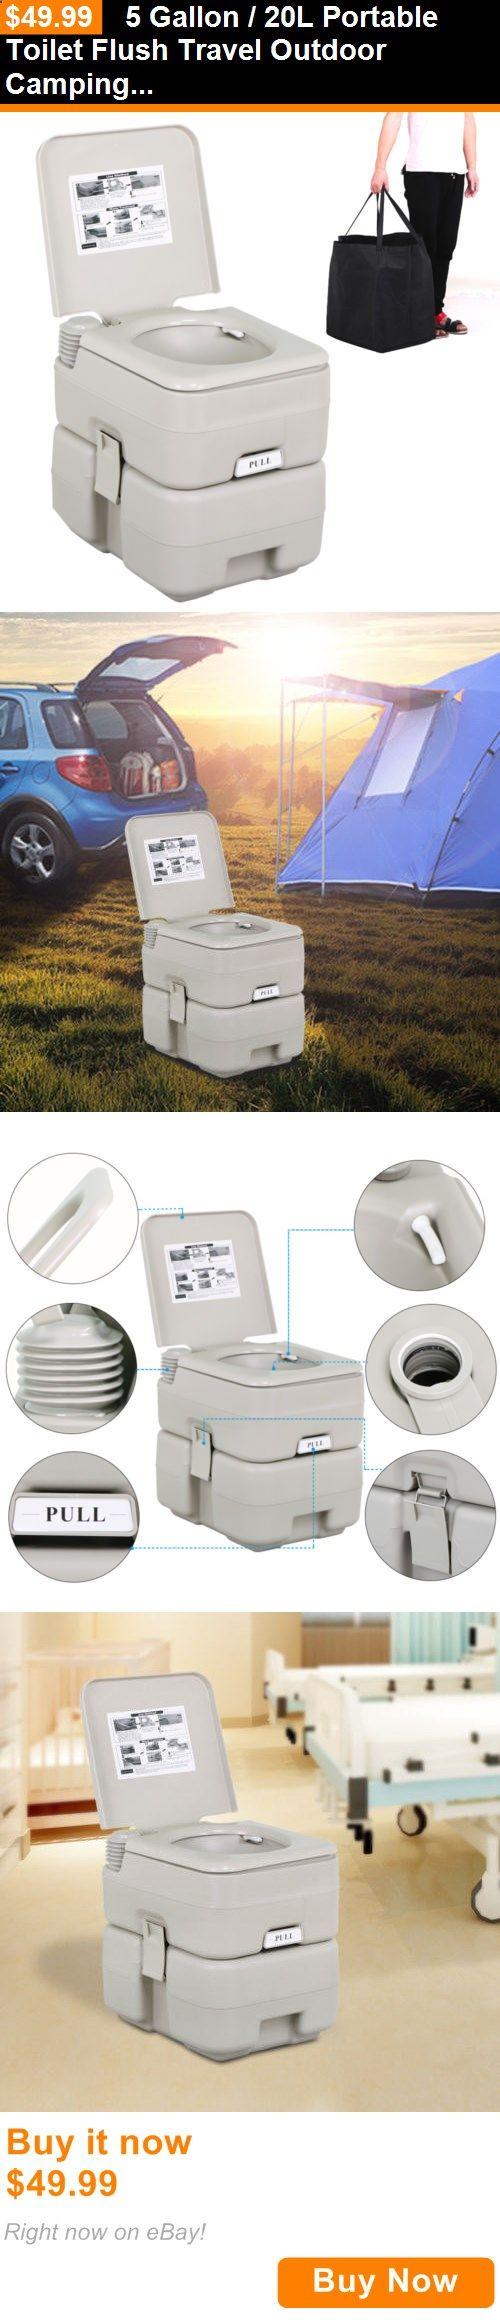 Other Camping Hygiene Accs 181400: 5 Gallon / 20L Portable Toilet Flush Travel Outdoor Camping Hiking Toilet Potty BUY IT NOW ONLY: $49.99